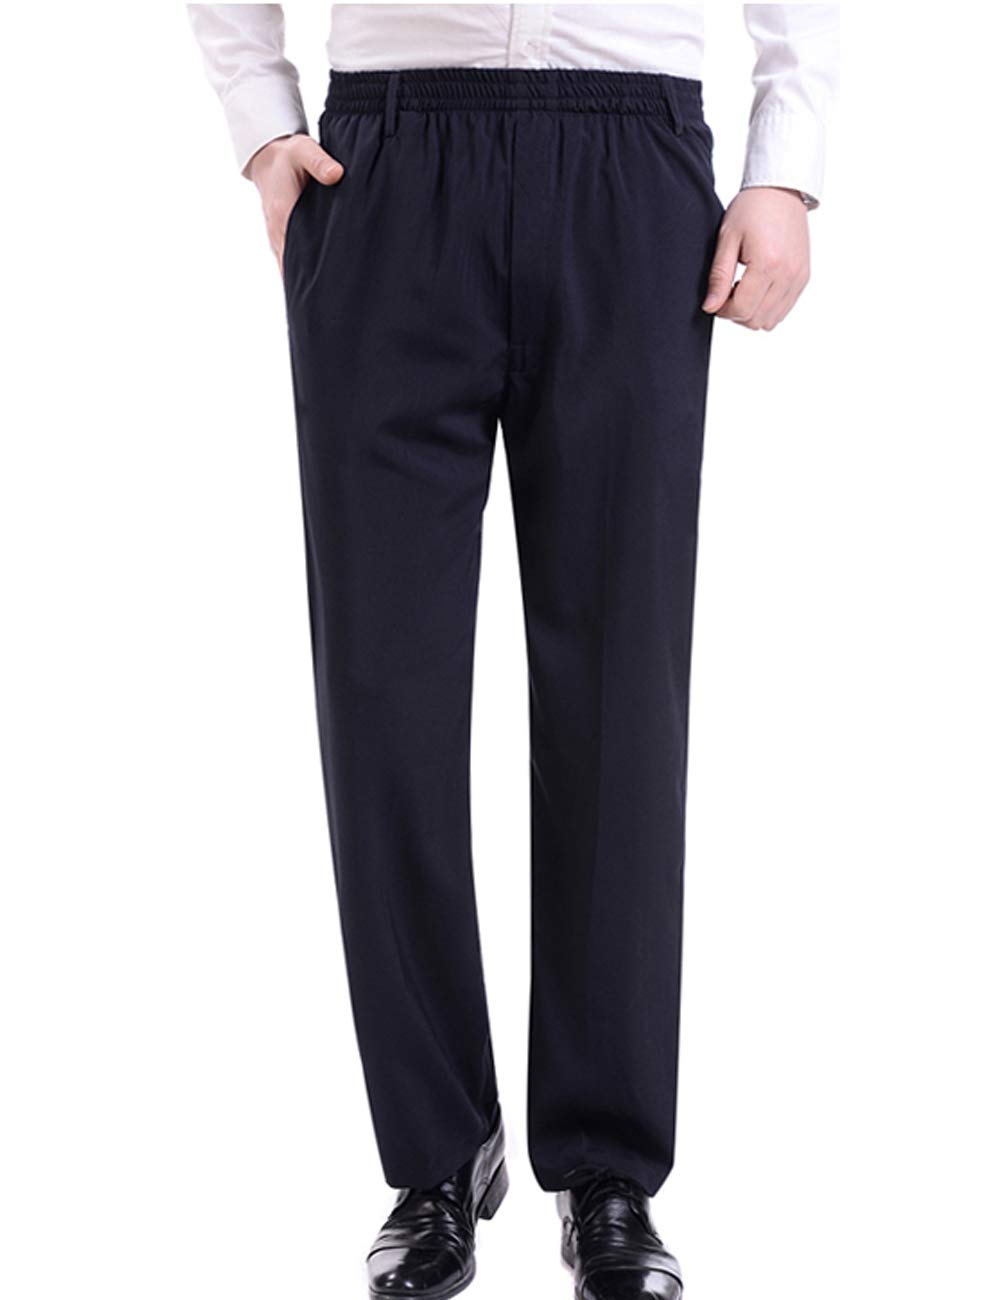 Zoulee Men's Summer Casual Zipper Fly Closure Jogger Sweatpants Quick-Drying Pants